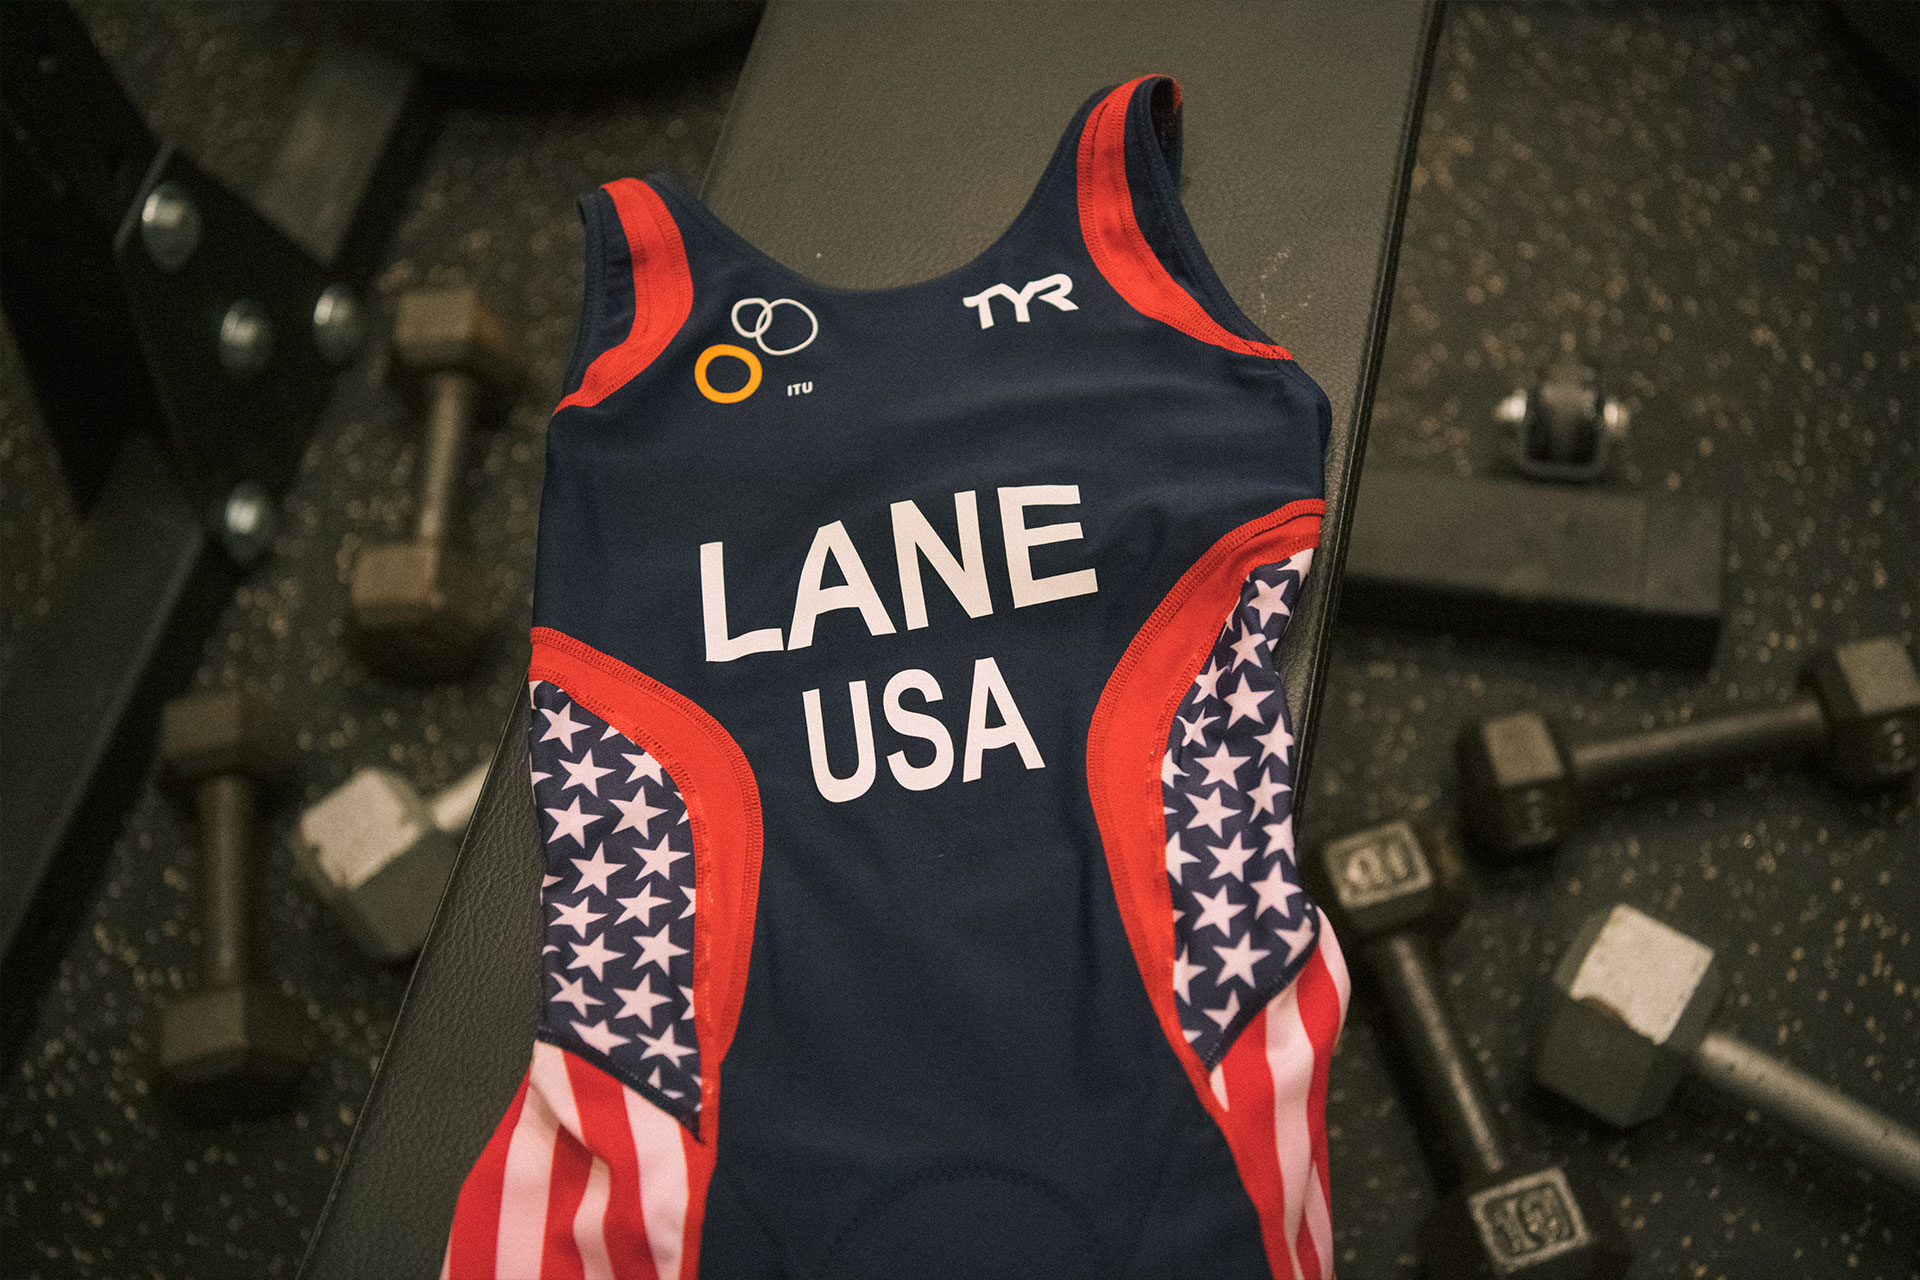 """Patty's running leotard with her last name """"LANE"""" above """"USA"""". The leotard is navy blue with red stripes and decorated with the American flag on the sides."""